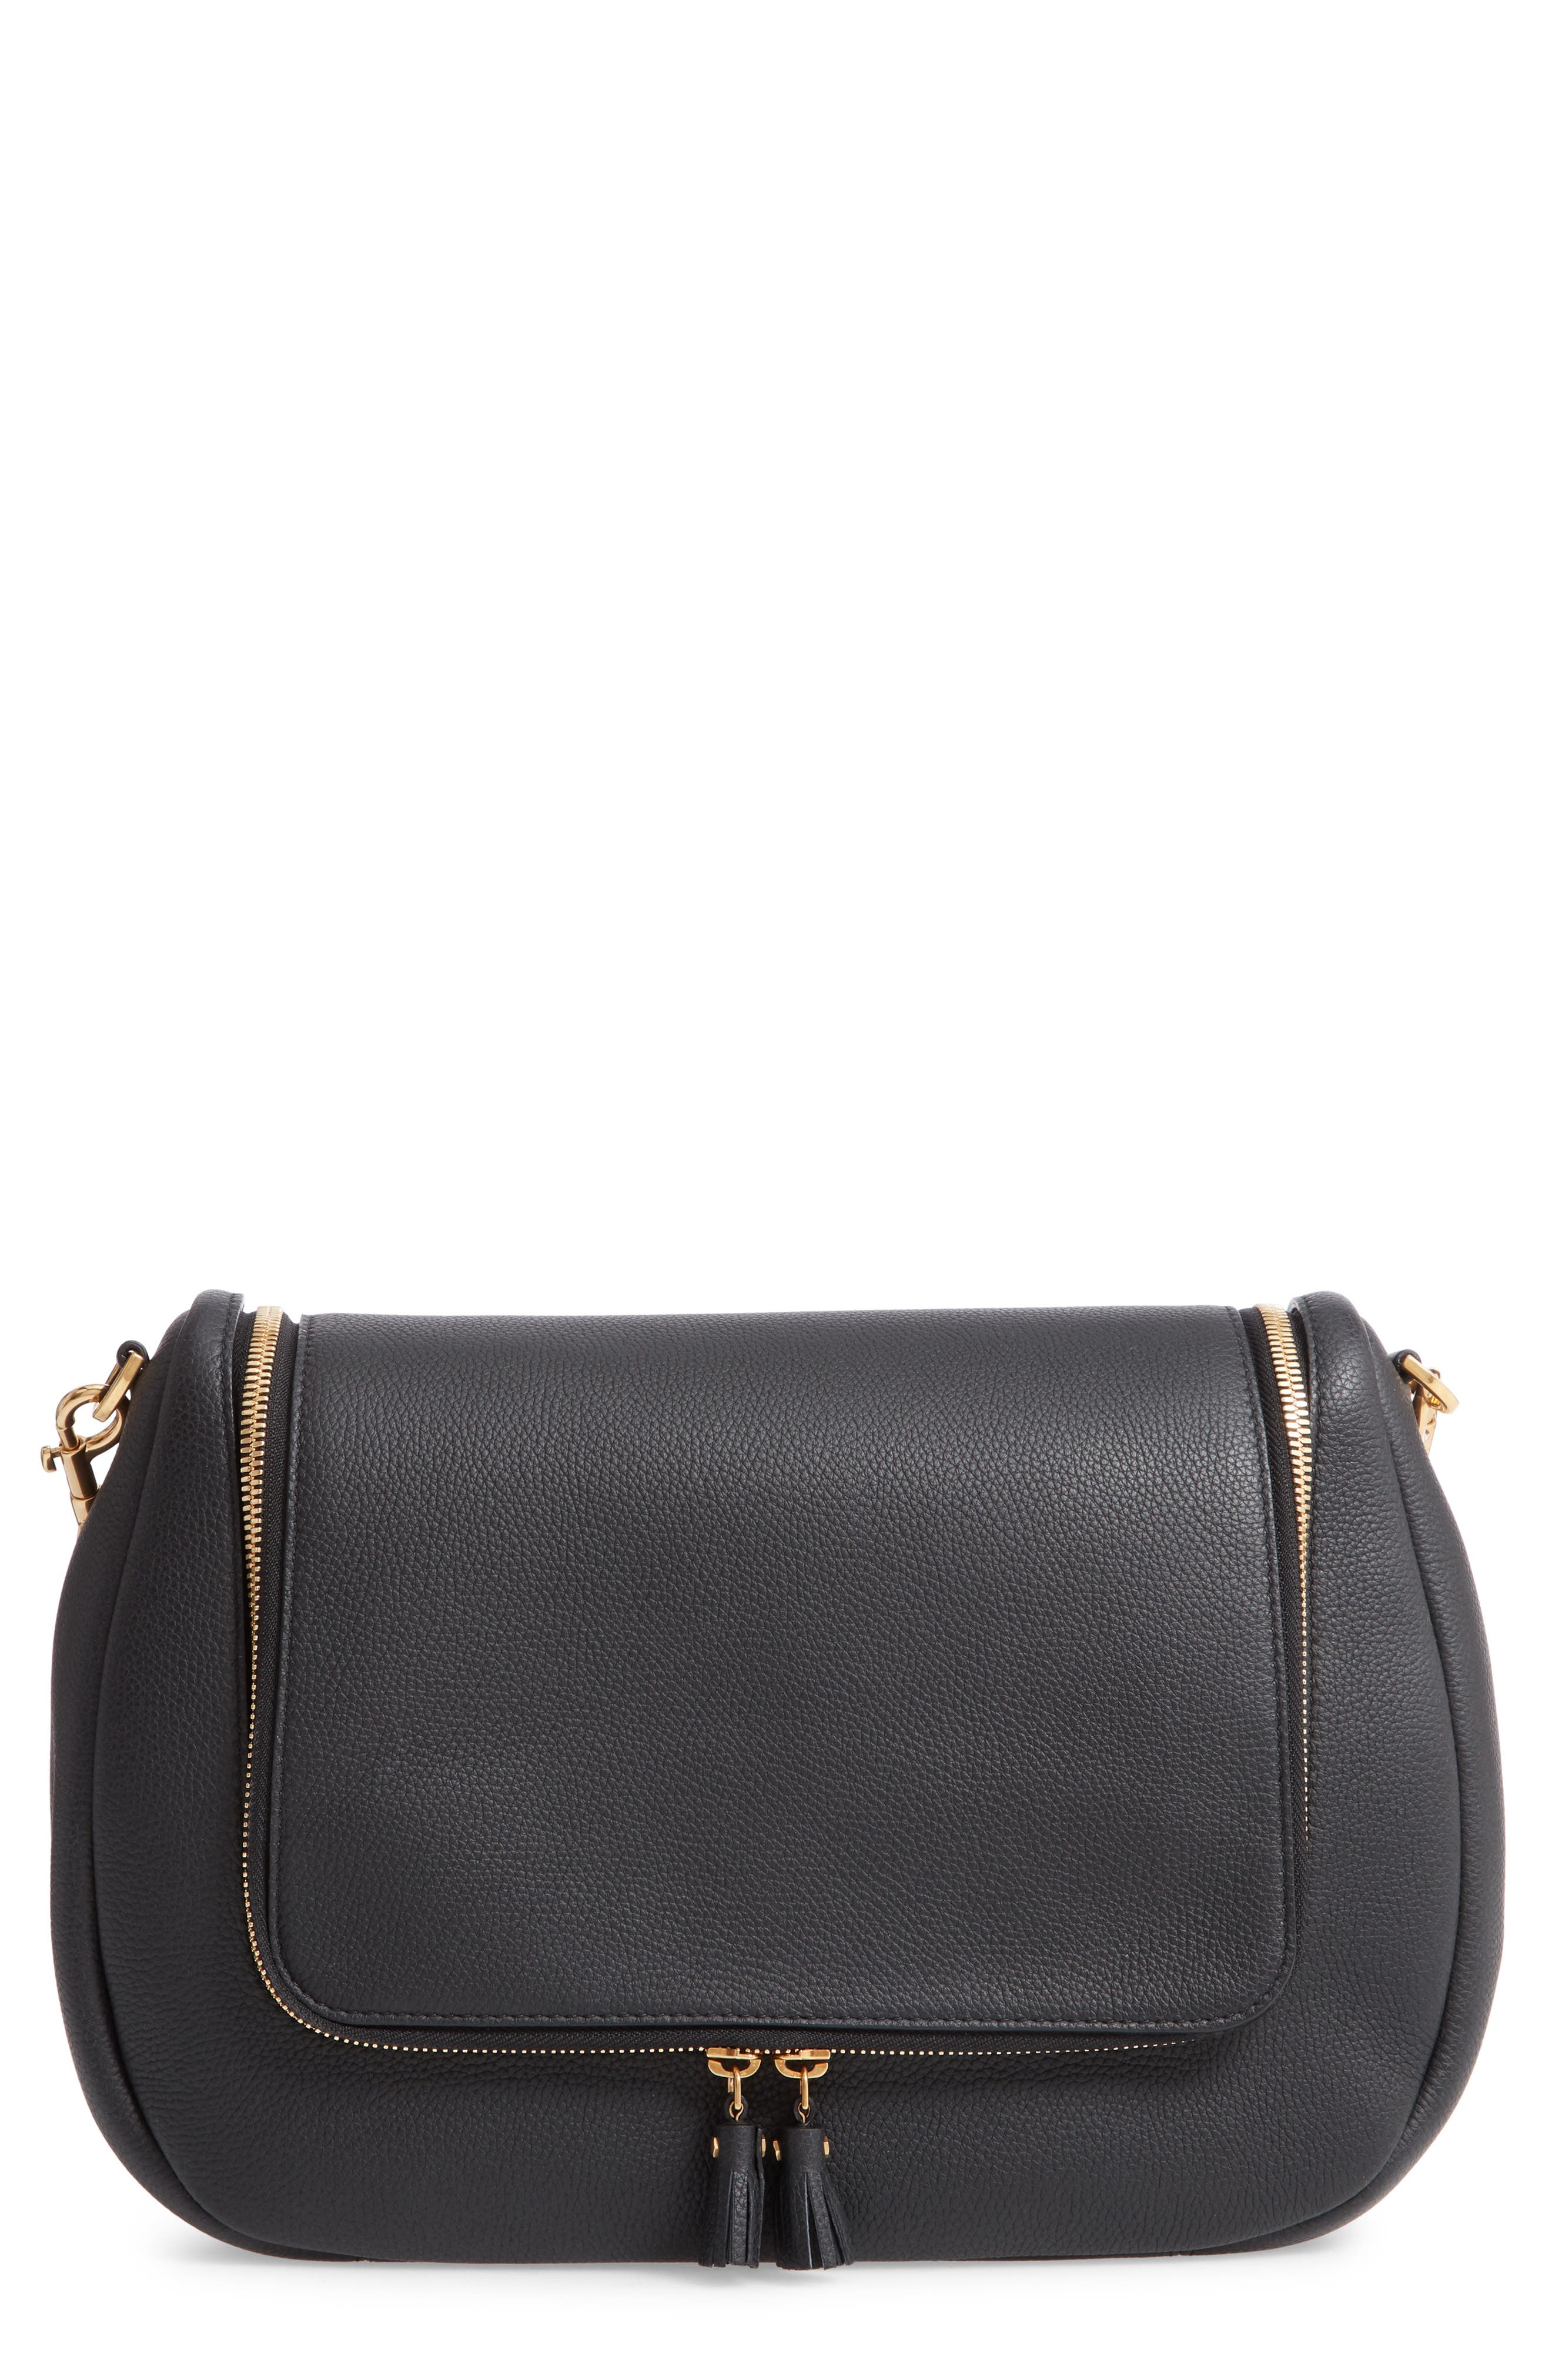 Maxi Vere Soft Satchel Shoulder Bag - Black